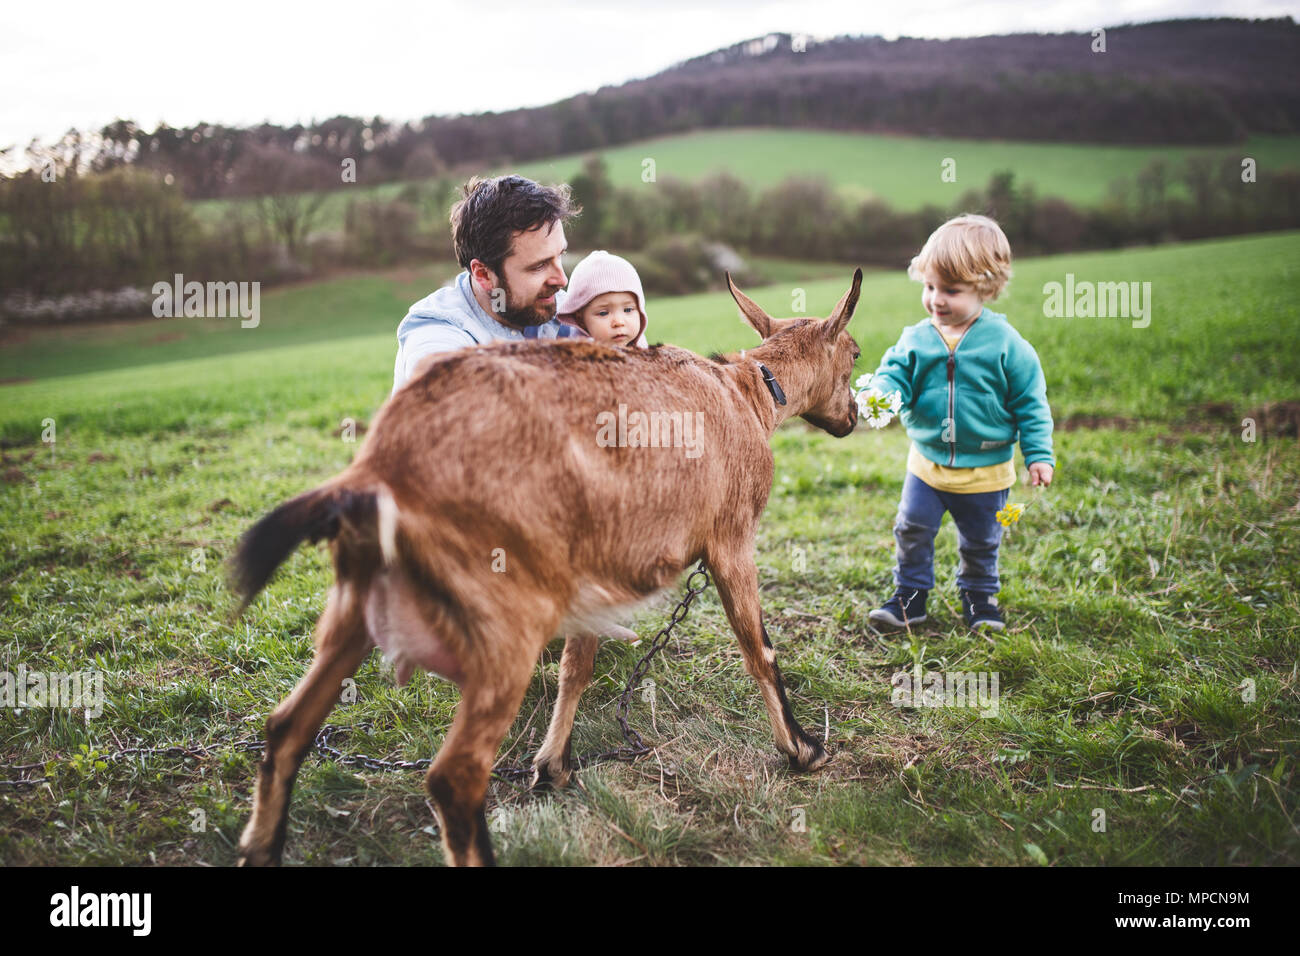 A father and his toddler children with a goat outside in spring nature. Stock Photo